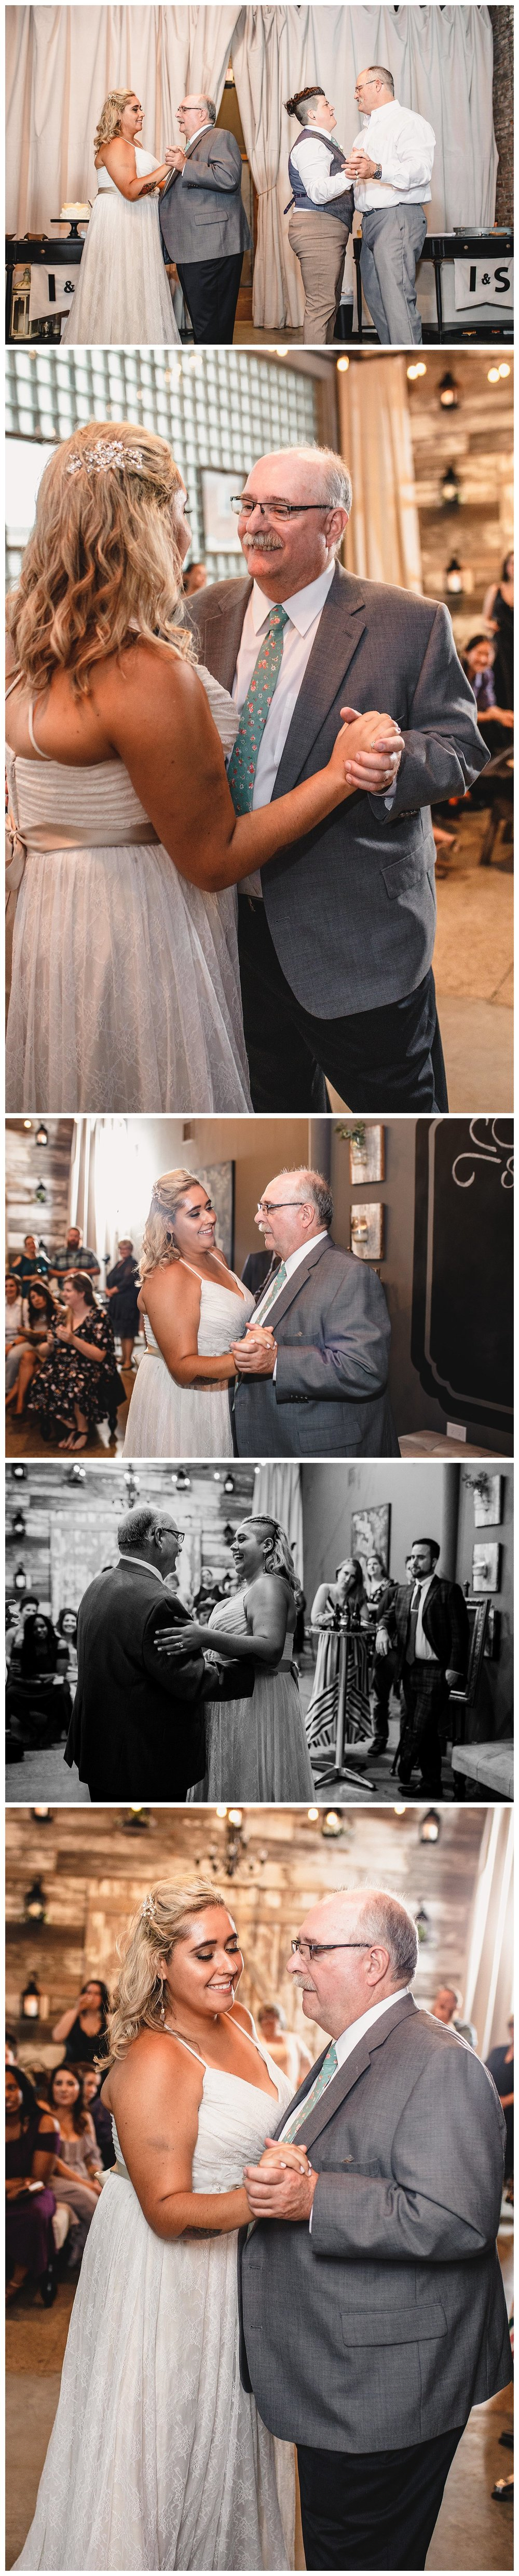 Kelsey_Diane_Photography_The_Vow_Exchange_Kansas_City_LGBT_Friendly_Wedding_Photographer_Kansas_City_Scout_Ica_0760.jpg